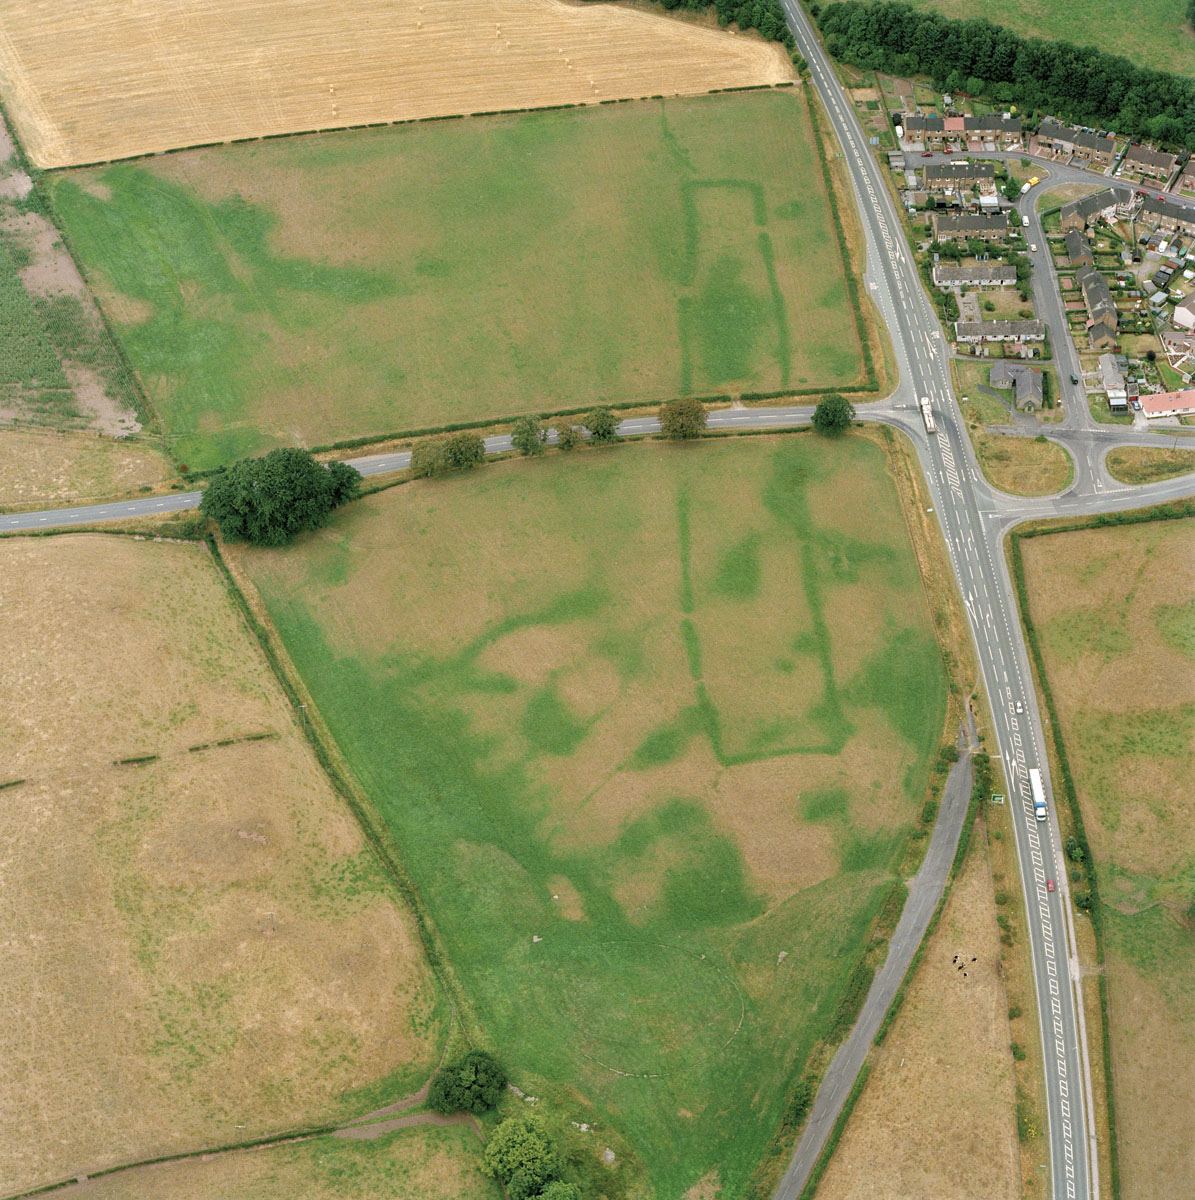 Prehistoric and Undated Settlement and Agriculture - Cropmark